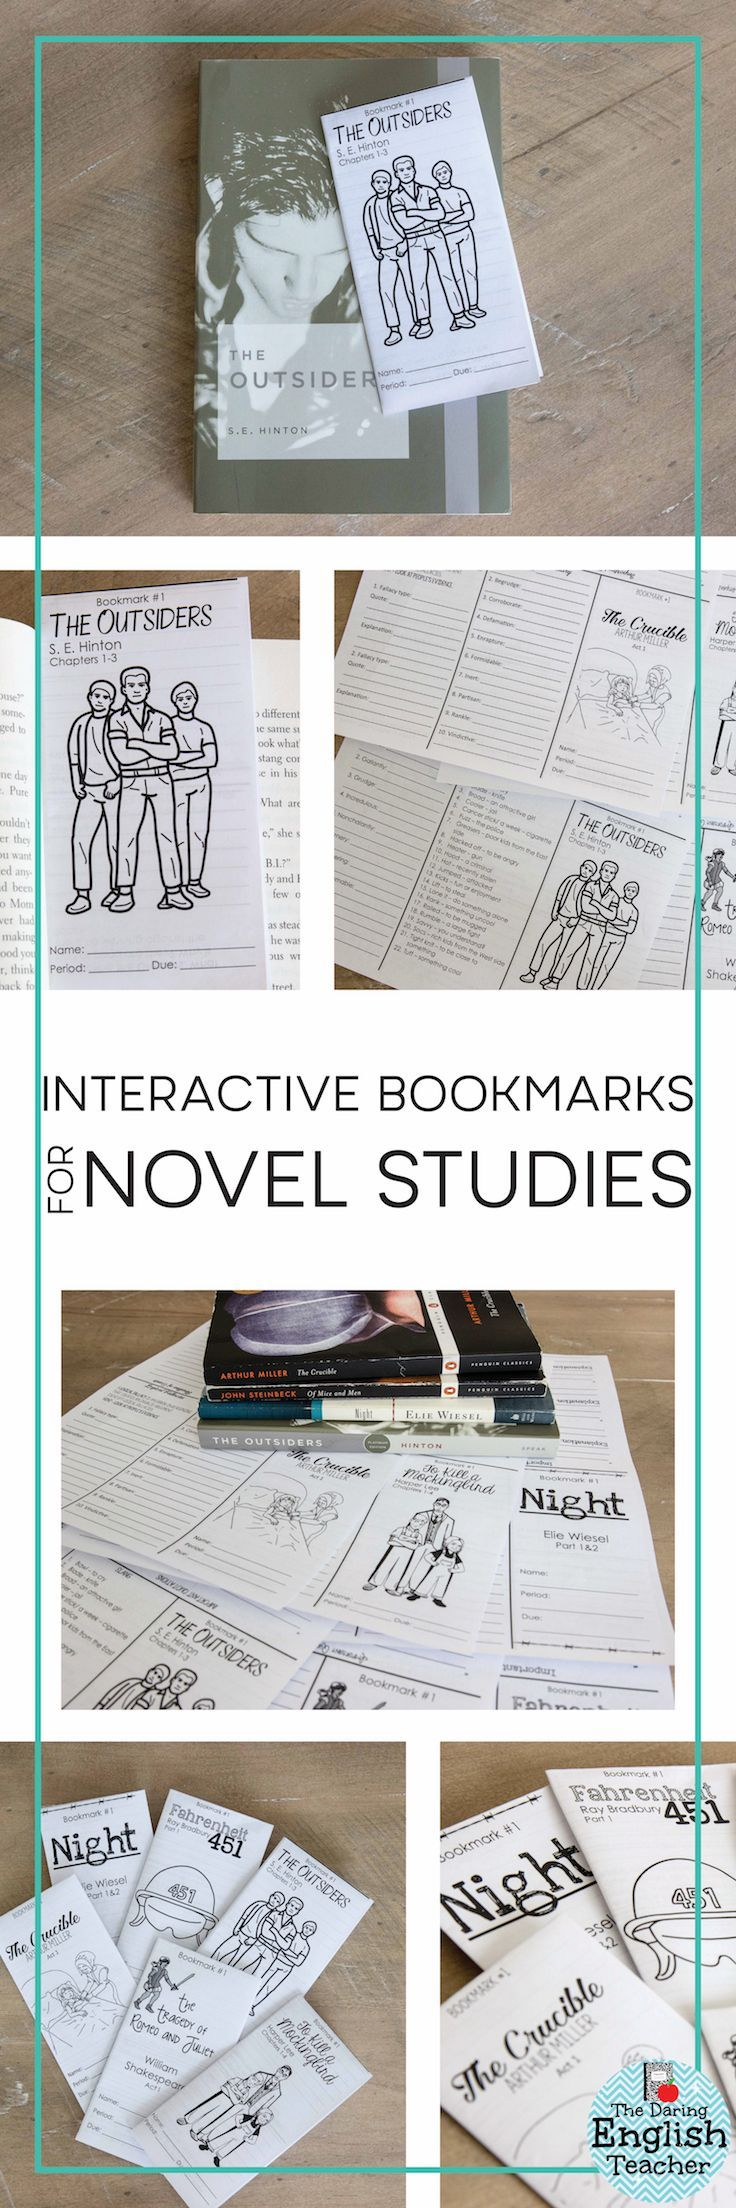 Engage students and increase their understanding with foldable and interactive novel study bookmarks.